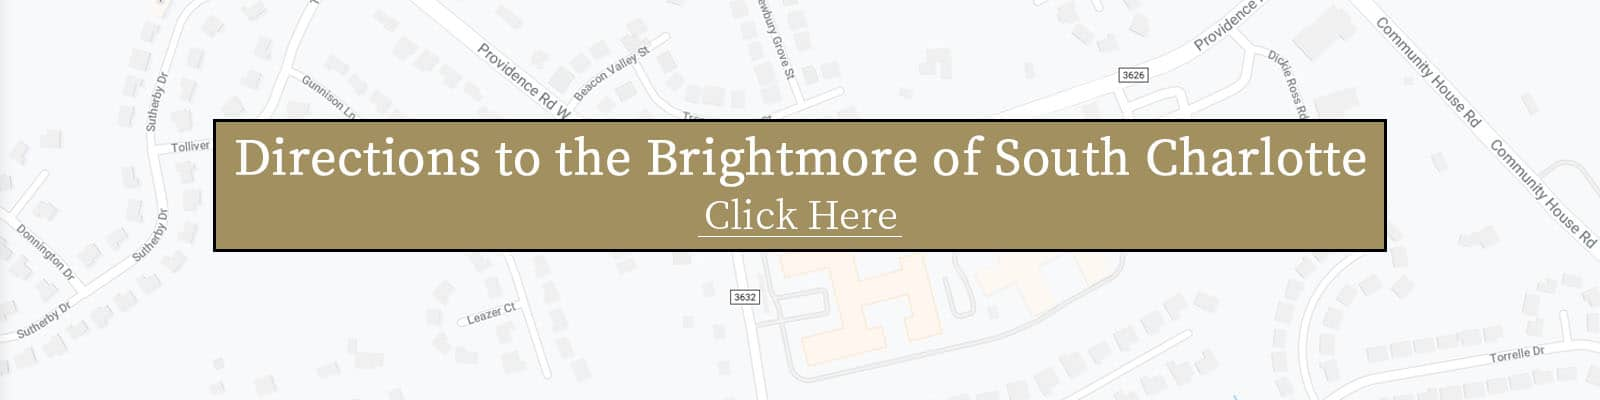 Brightmore of South Charlotte map